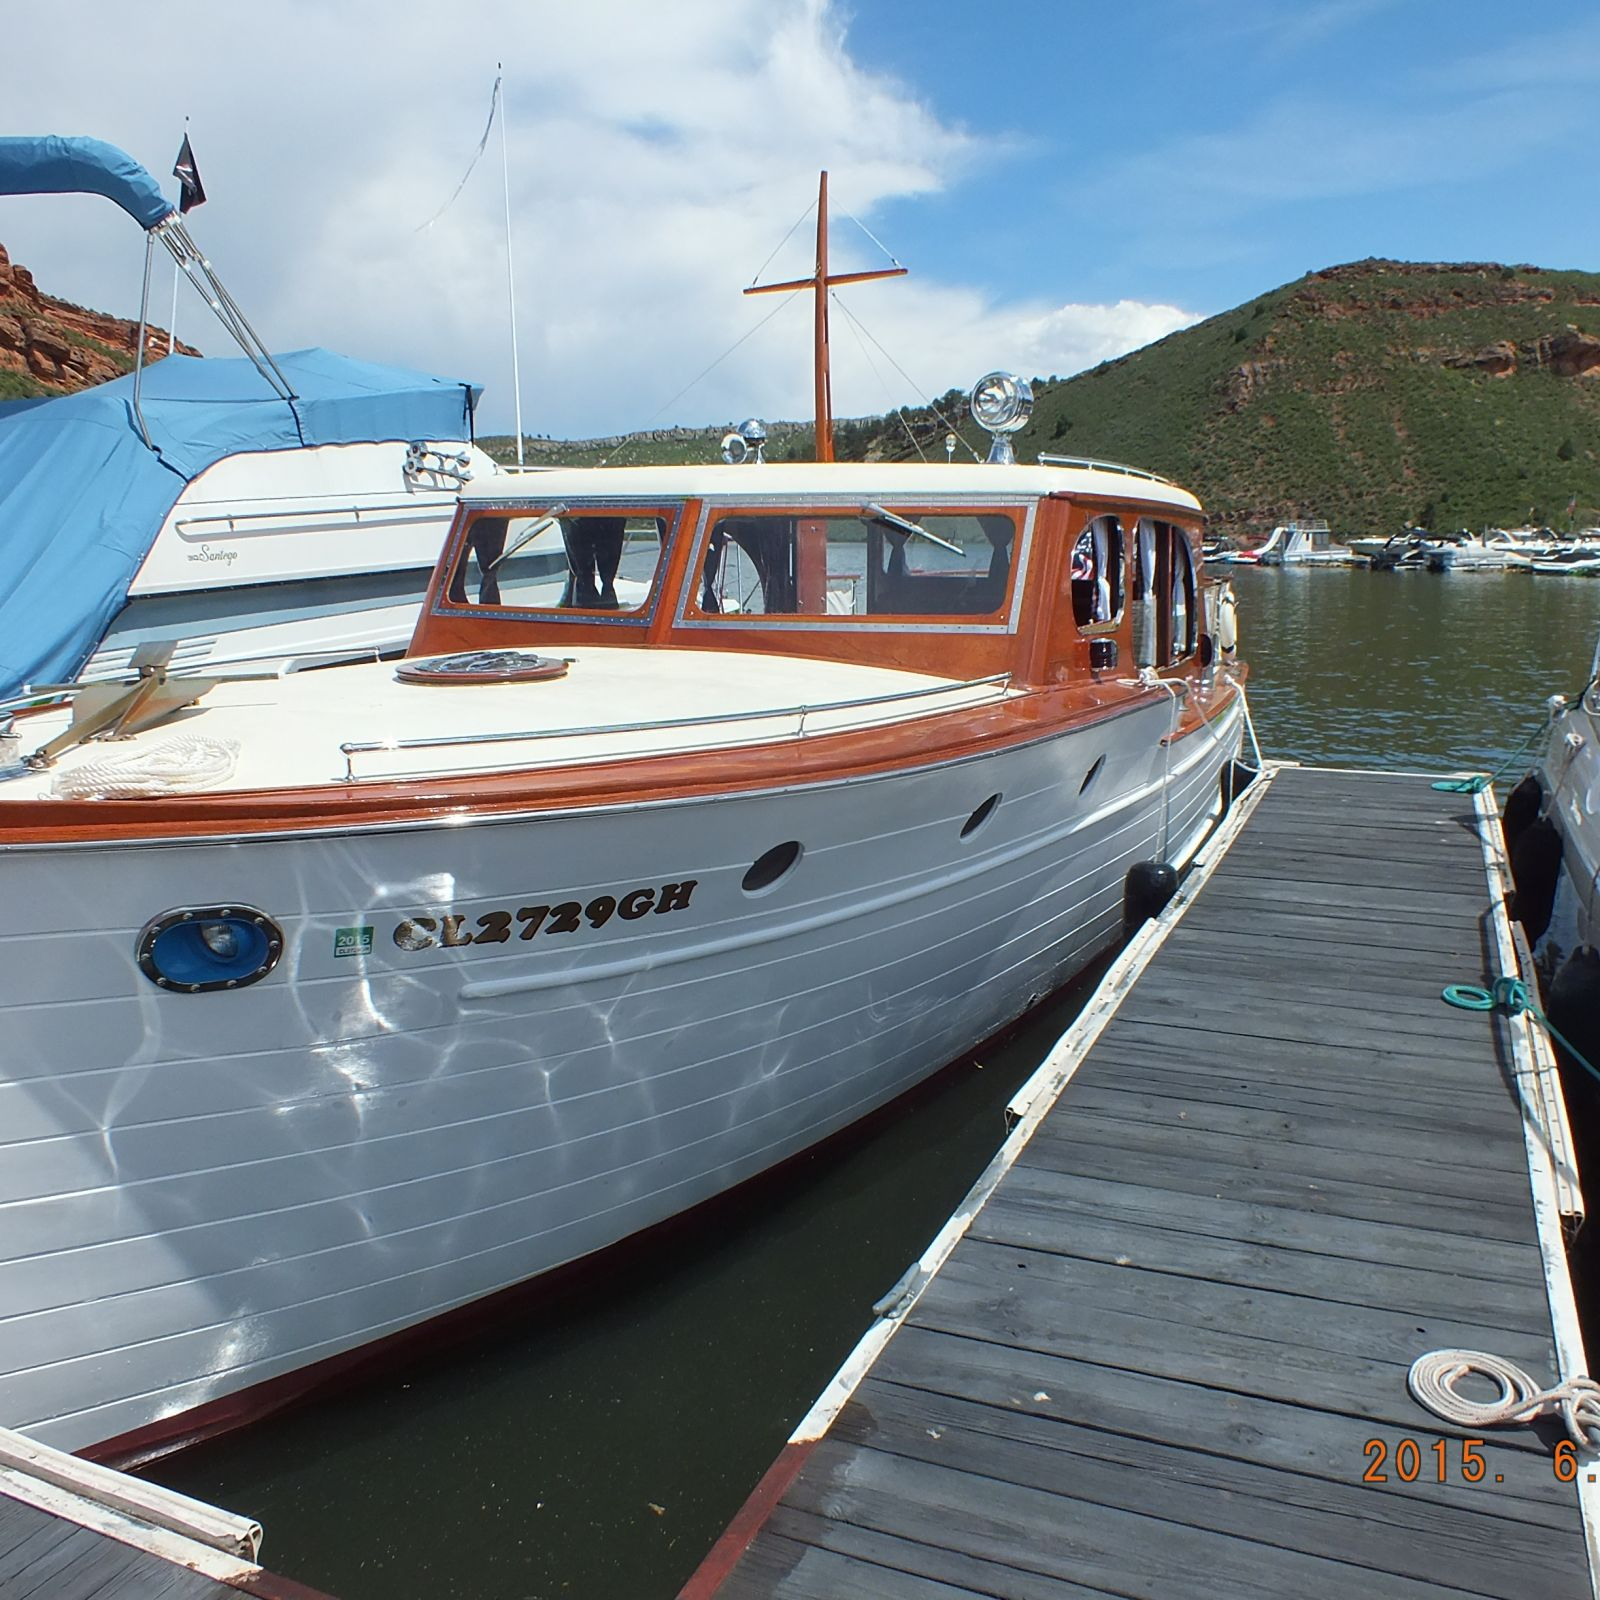 Power classic wooden boat ladyben classic wooden boats for Classic chris craft wooden boats